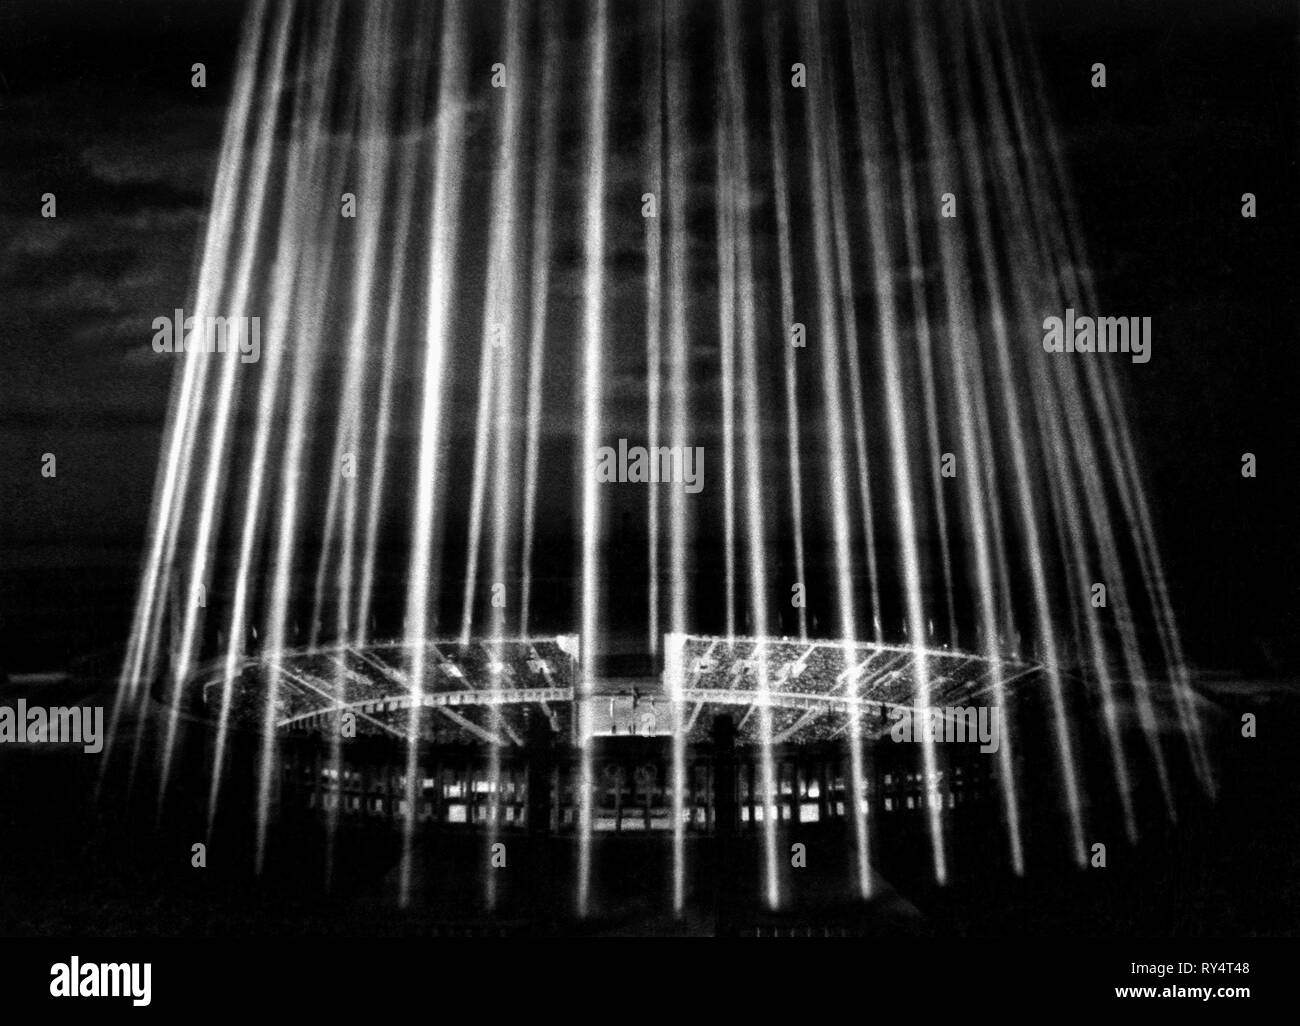 THE BERLIN OLYMPIC STADIUM, OLYMPIA PART 2: THE FESTIVAL OF BEAUTY, 1938 - Stock Image